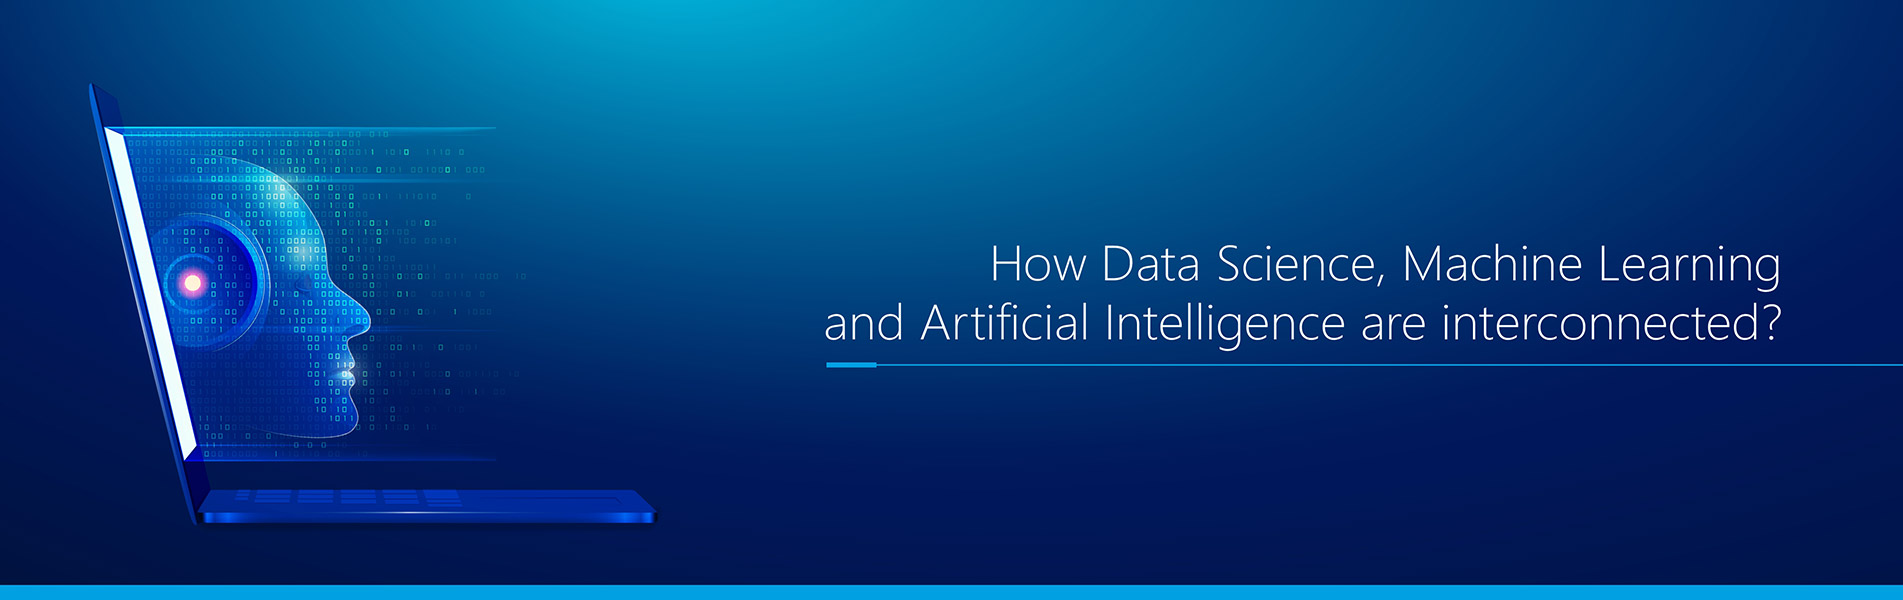 data science, machine learning, artificial intelligence